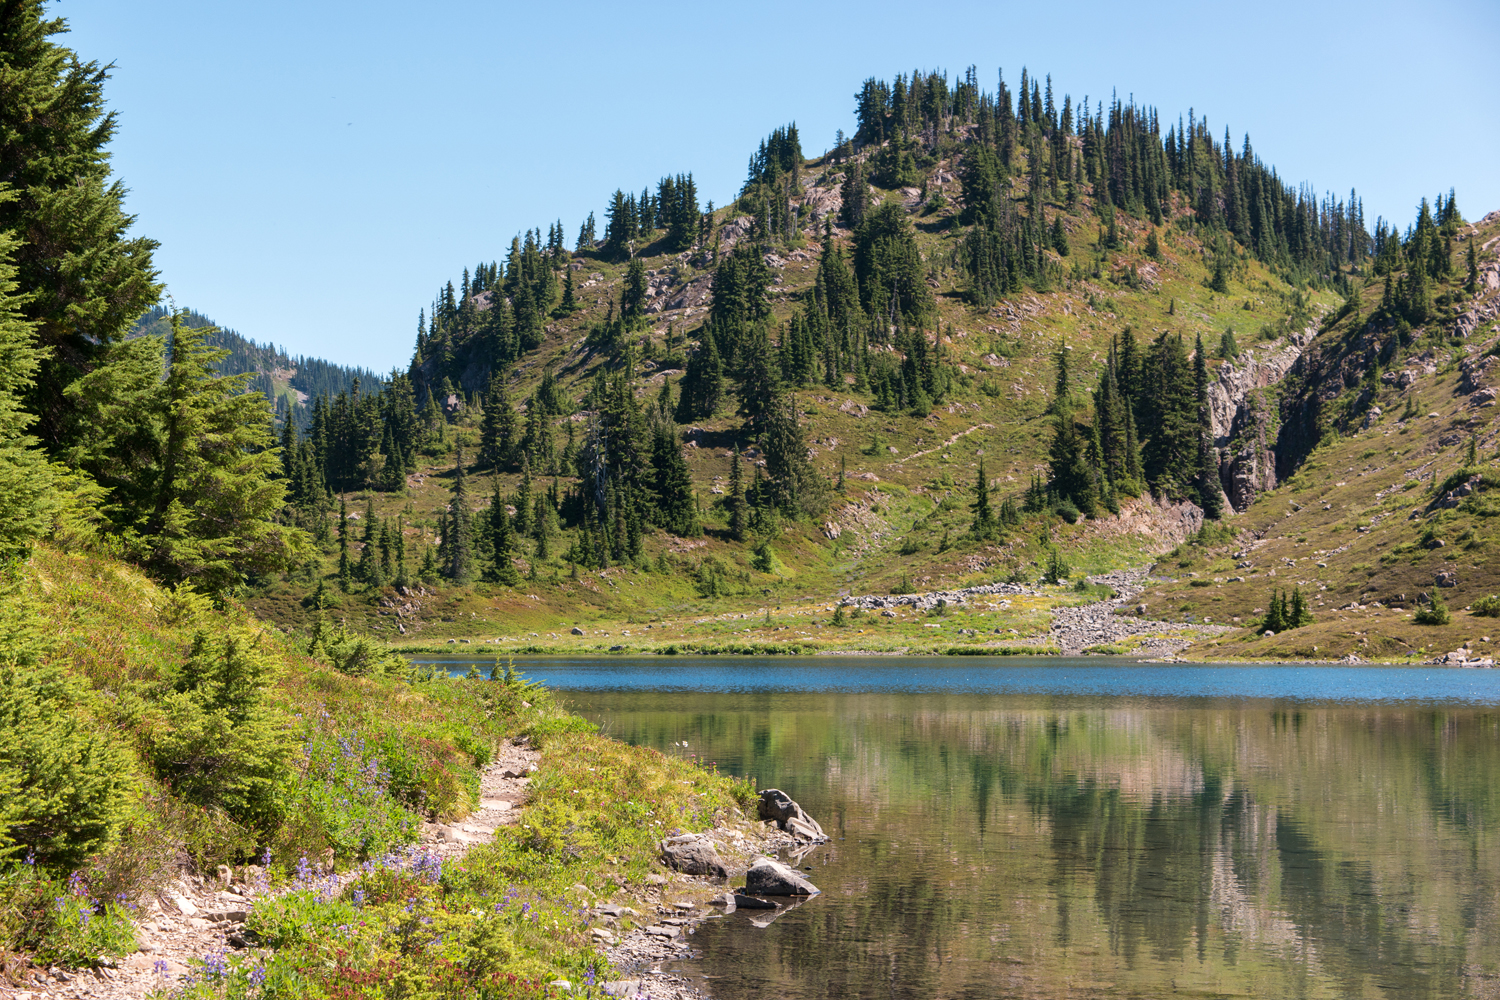 Wasim Muklashy Photography_Olympic National Park_High Divide Loop_076.jpg